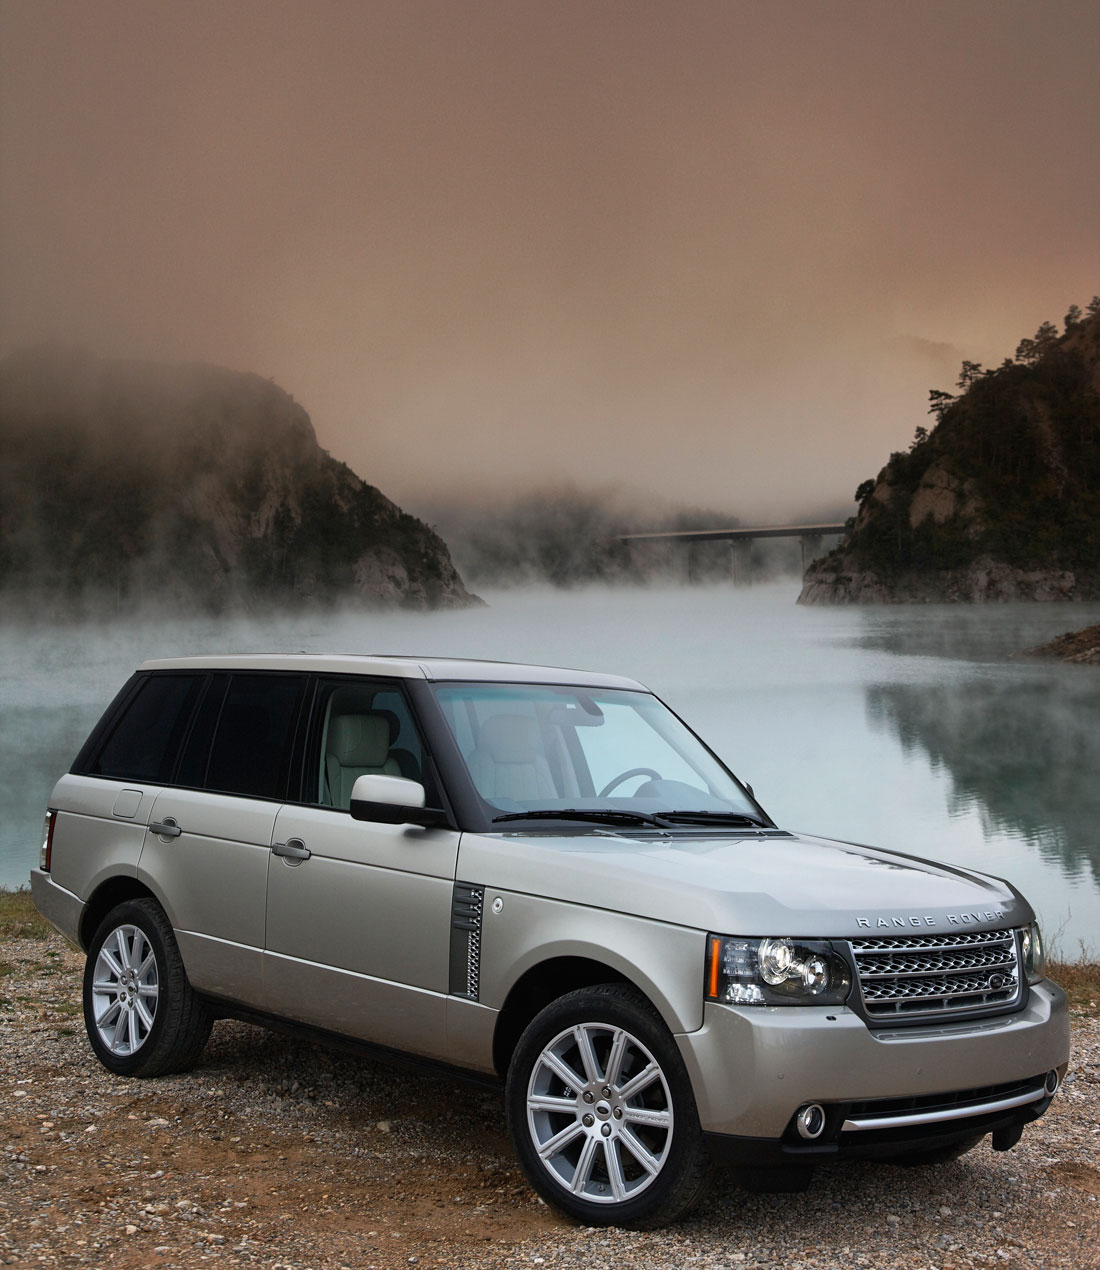 Land-Rover Range Rover 5.0 Technical Details, History